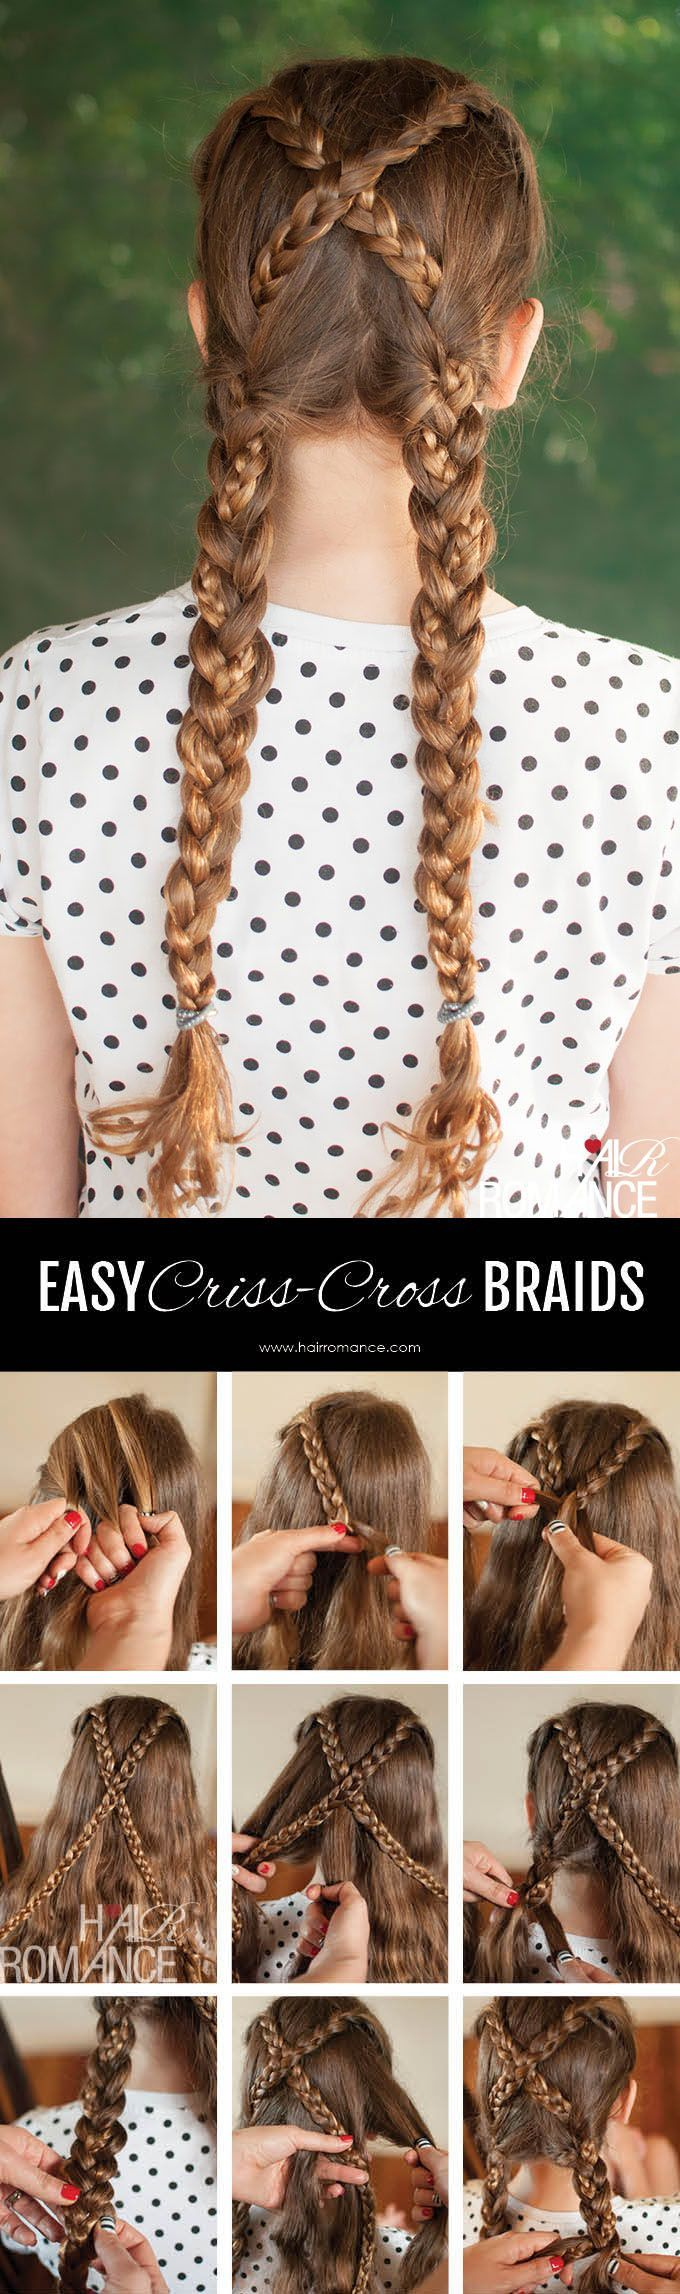 Back to school hairstyles criss cross braids tutorial arrie